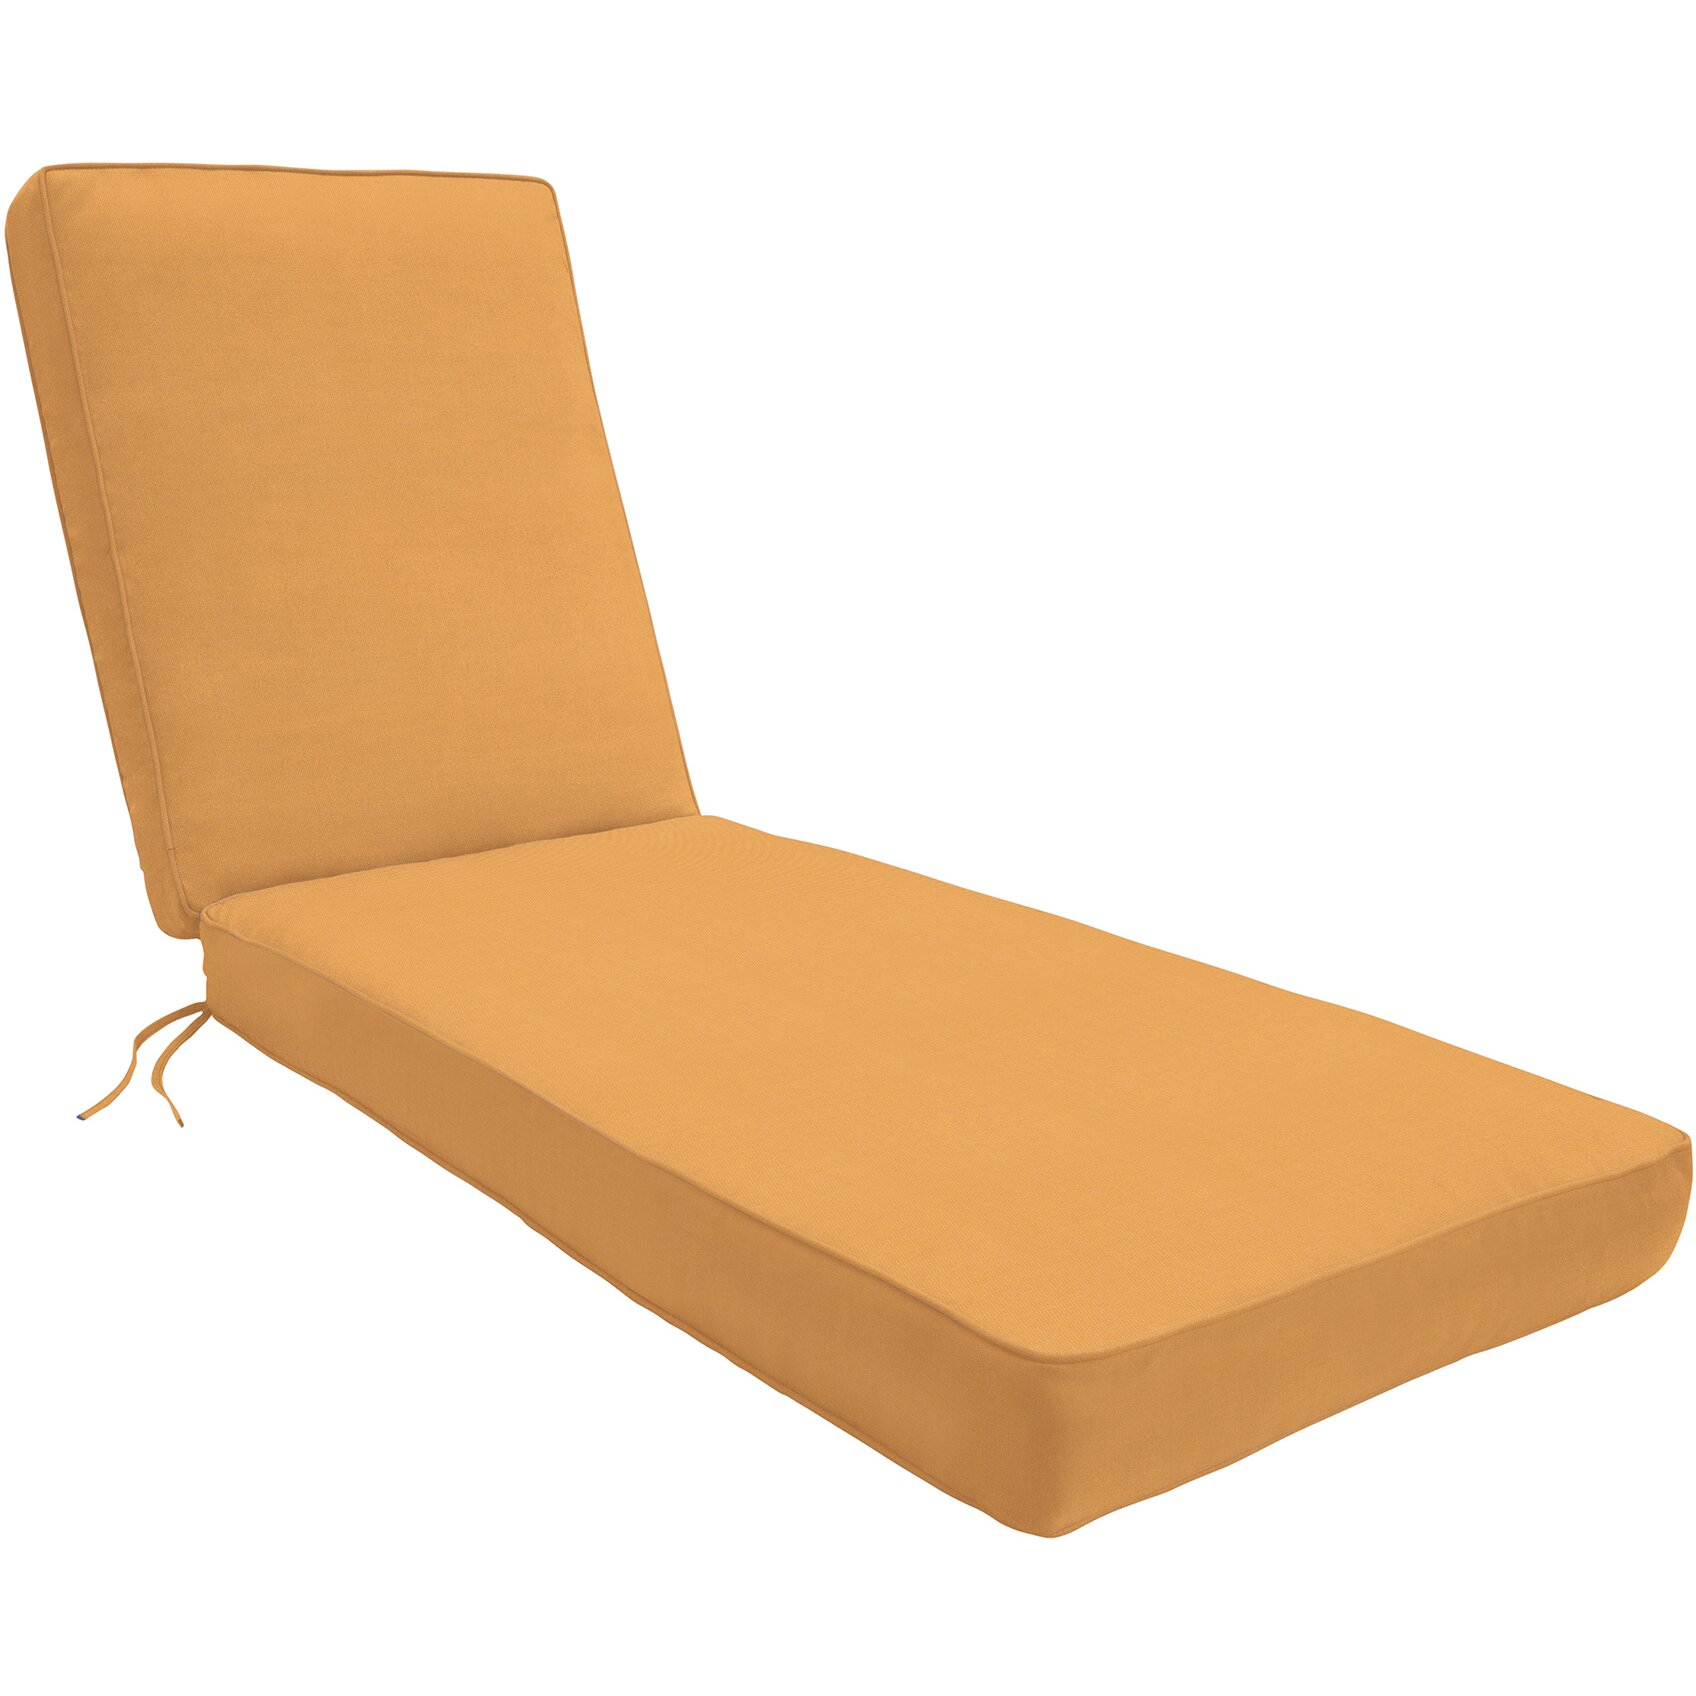 Wayfair custom outdoor cushions outdoor sunbrella chaise for Chaise cushions sale